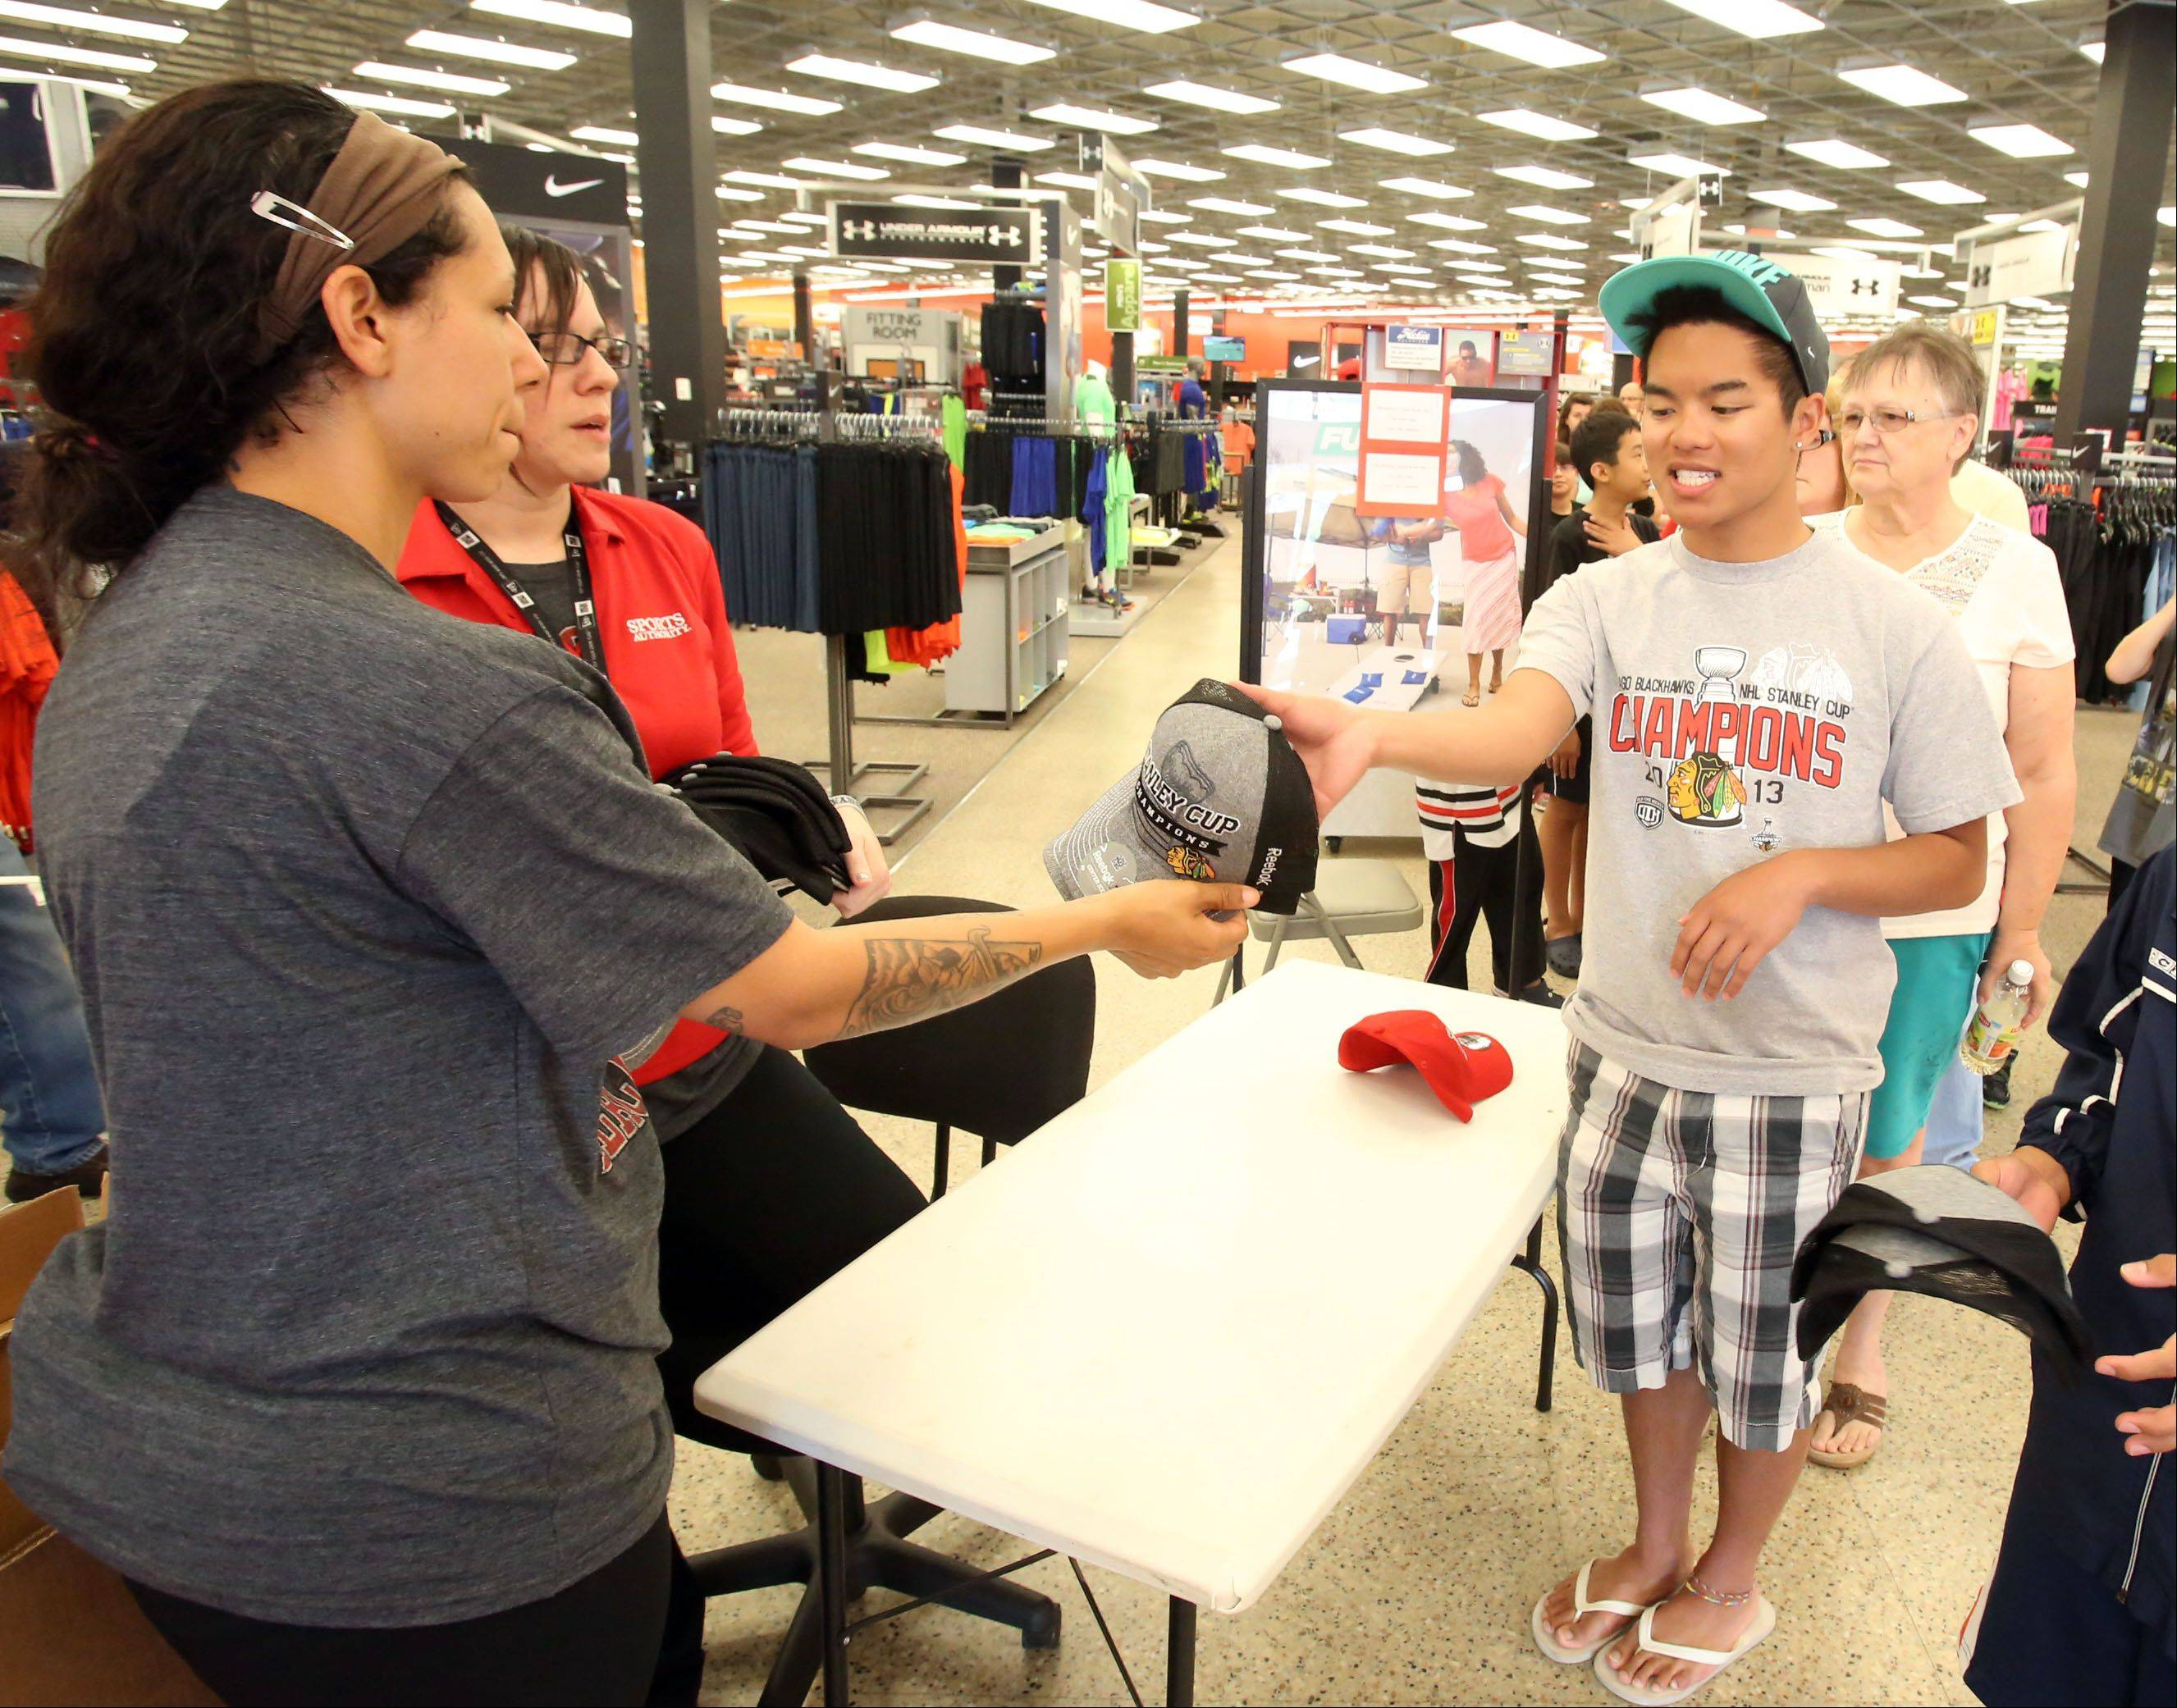 After waiting in line for two hours, Jeremy Vivit of Mount Prospect gets one of the last official Chicago Blackhawks Stanley Cup hats from Tanya Neitzke at Sports Authority on Thursday at Randhurst Village in Mount Prospect.